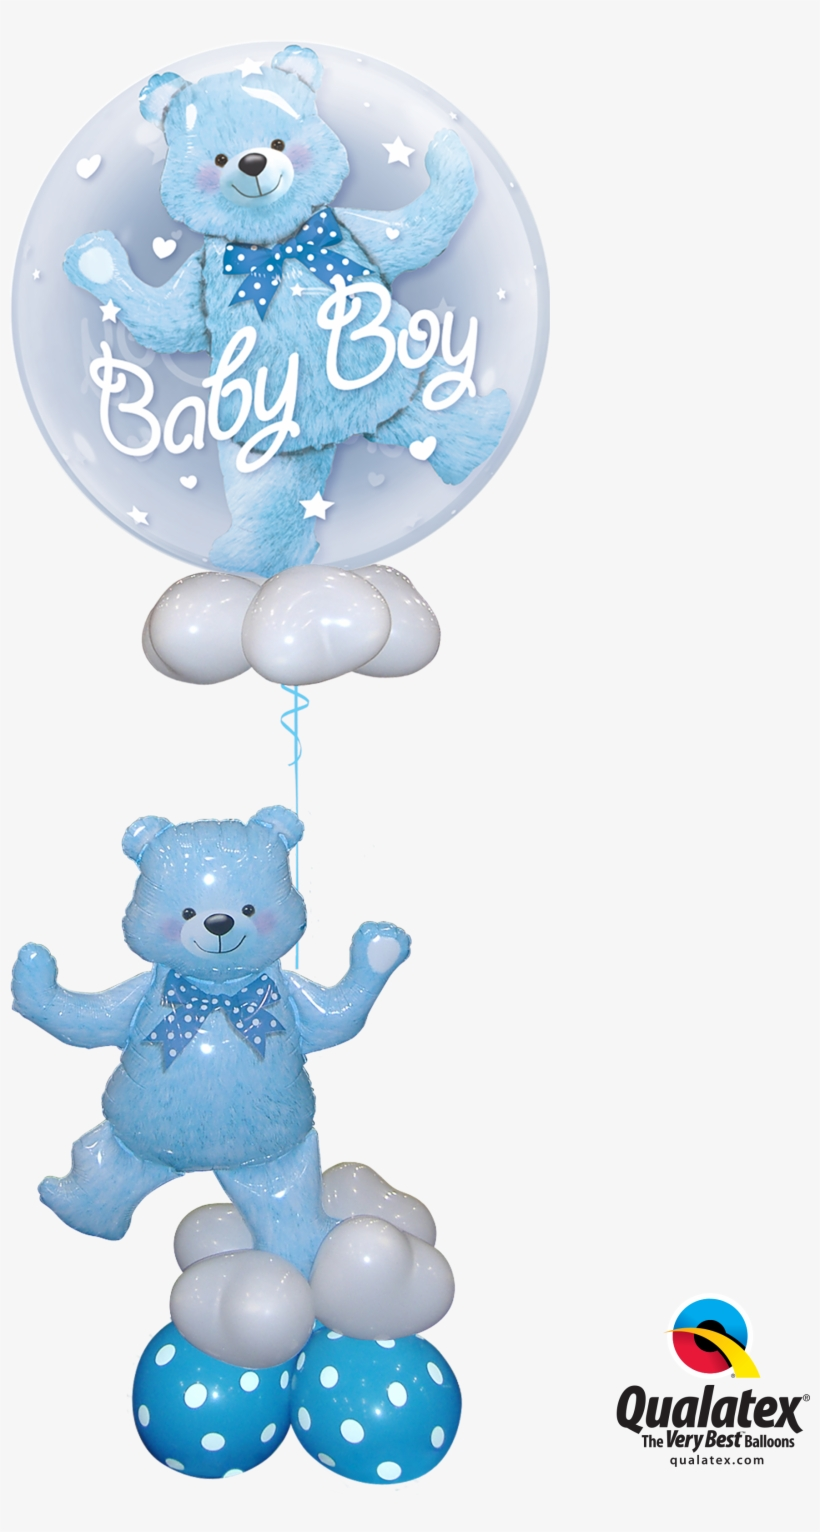 Baby Boy Blue Bear New Baby Balloon Bouquet Balloons Baby Boy Stand Png Image Transparent Png Free Download On Seekpng